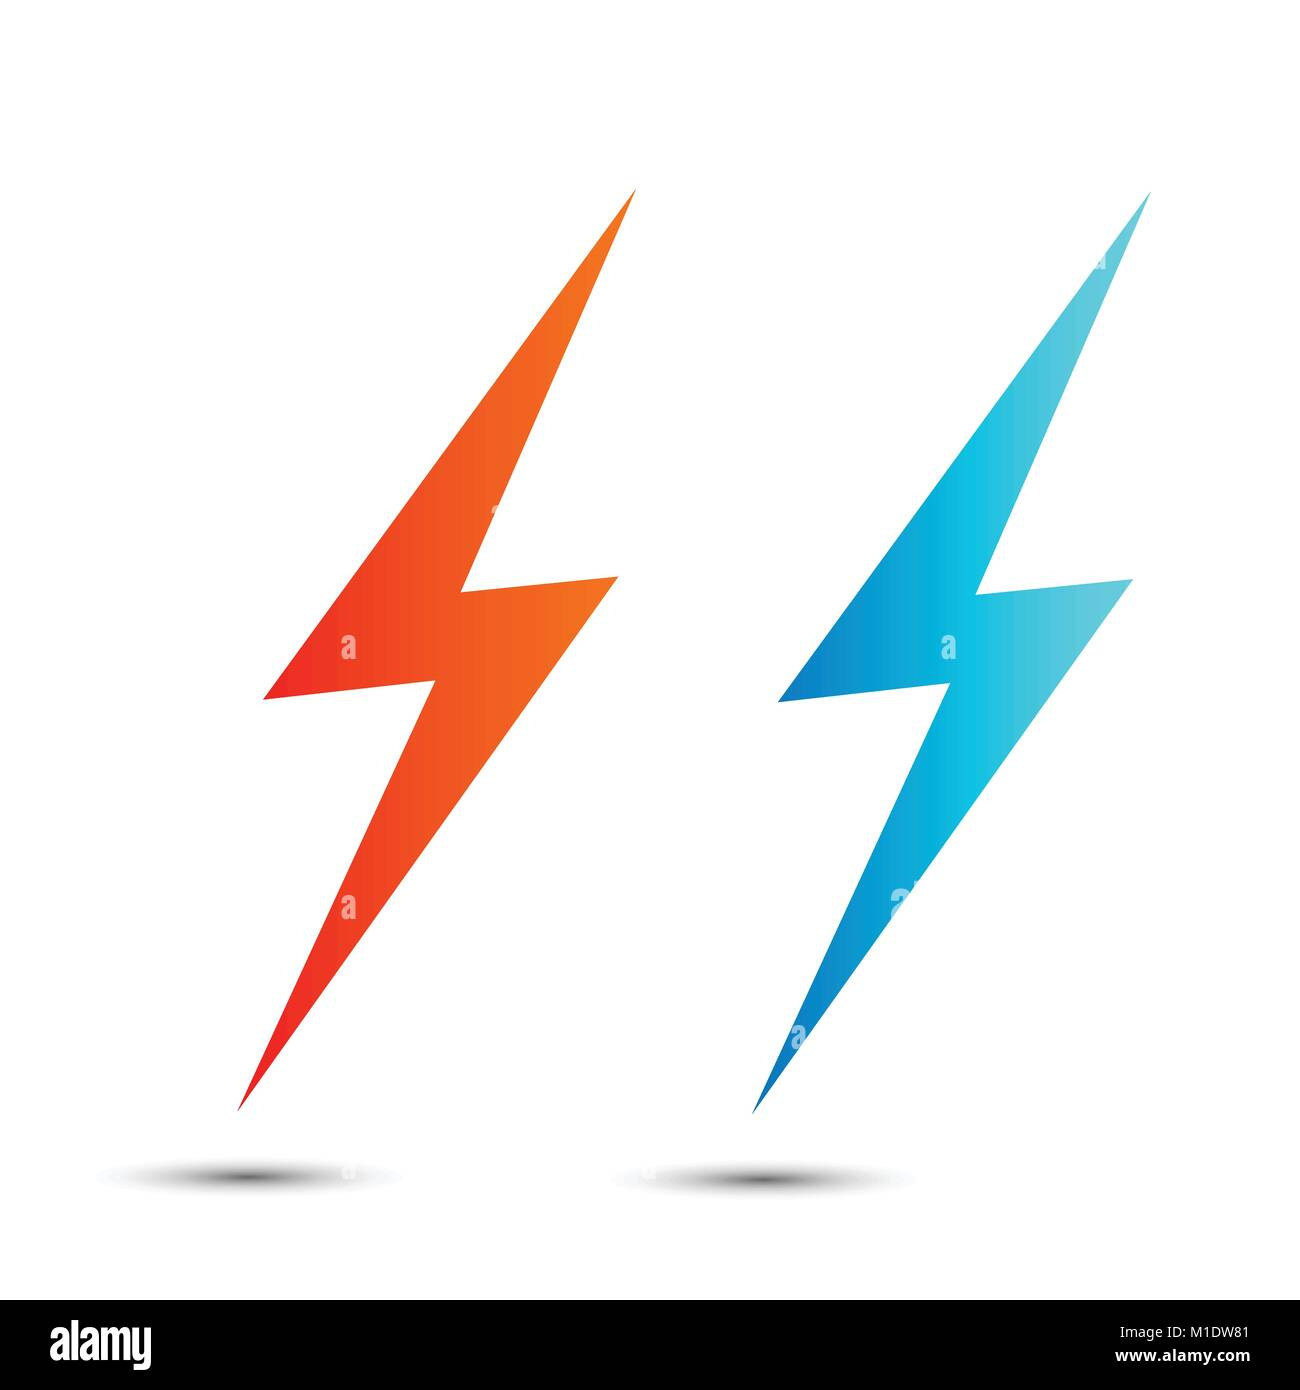 Lightning flat icons set  Simple icon storm or thunder and